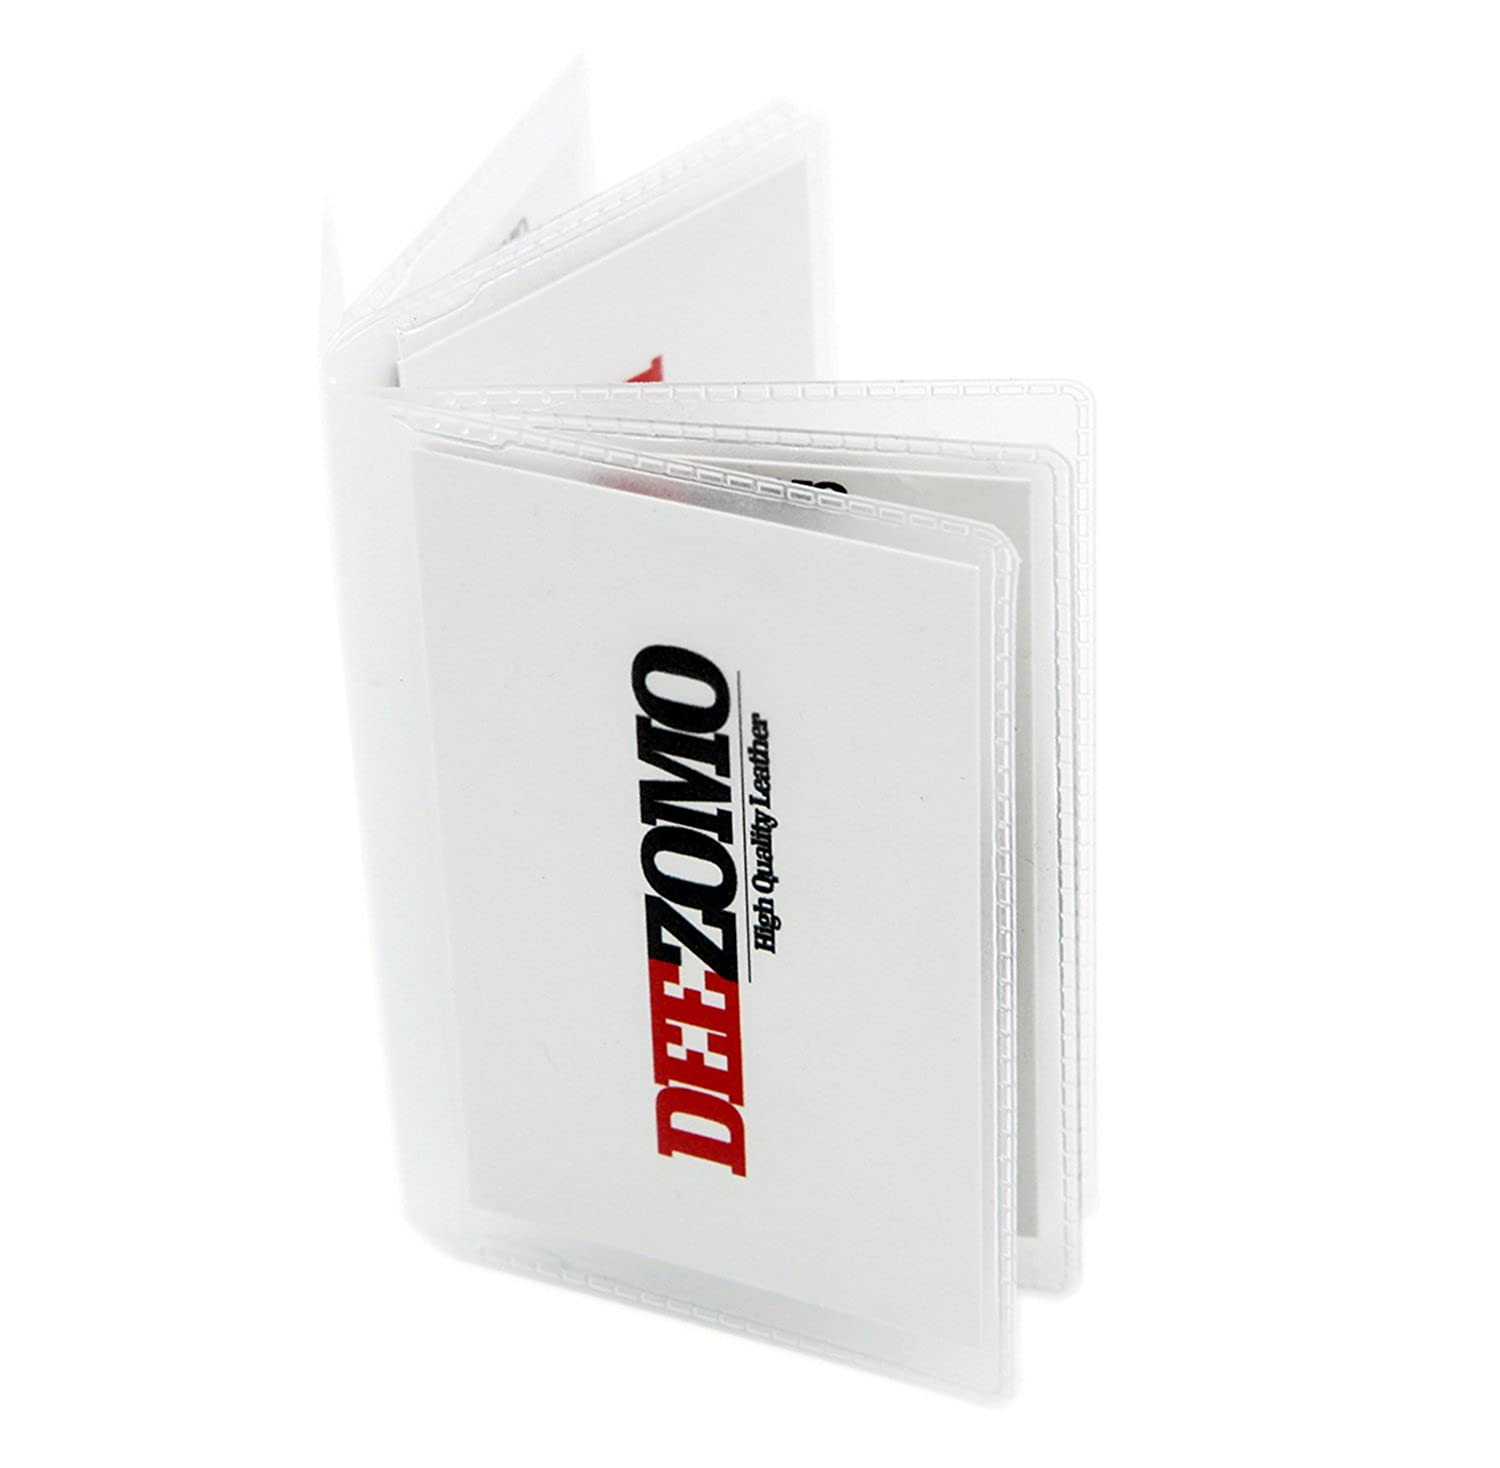 SET OF 2 Wallet Inserts Replacement 12 Page Card Holder for Bifold or Trifolds Wallet CC16020B